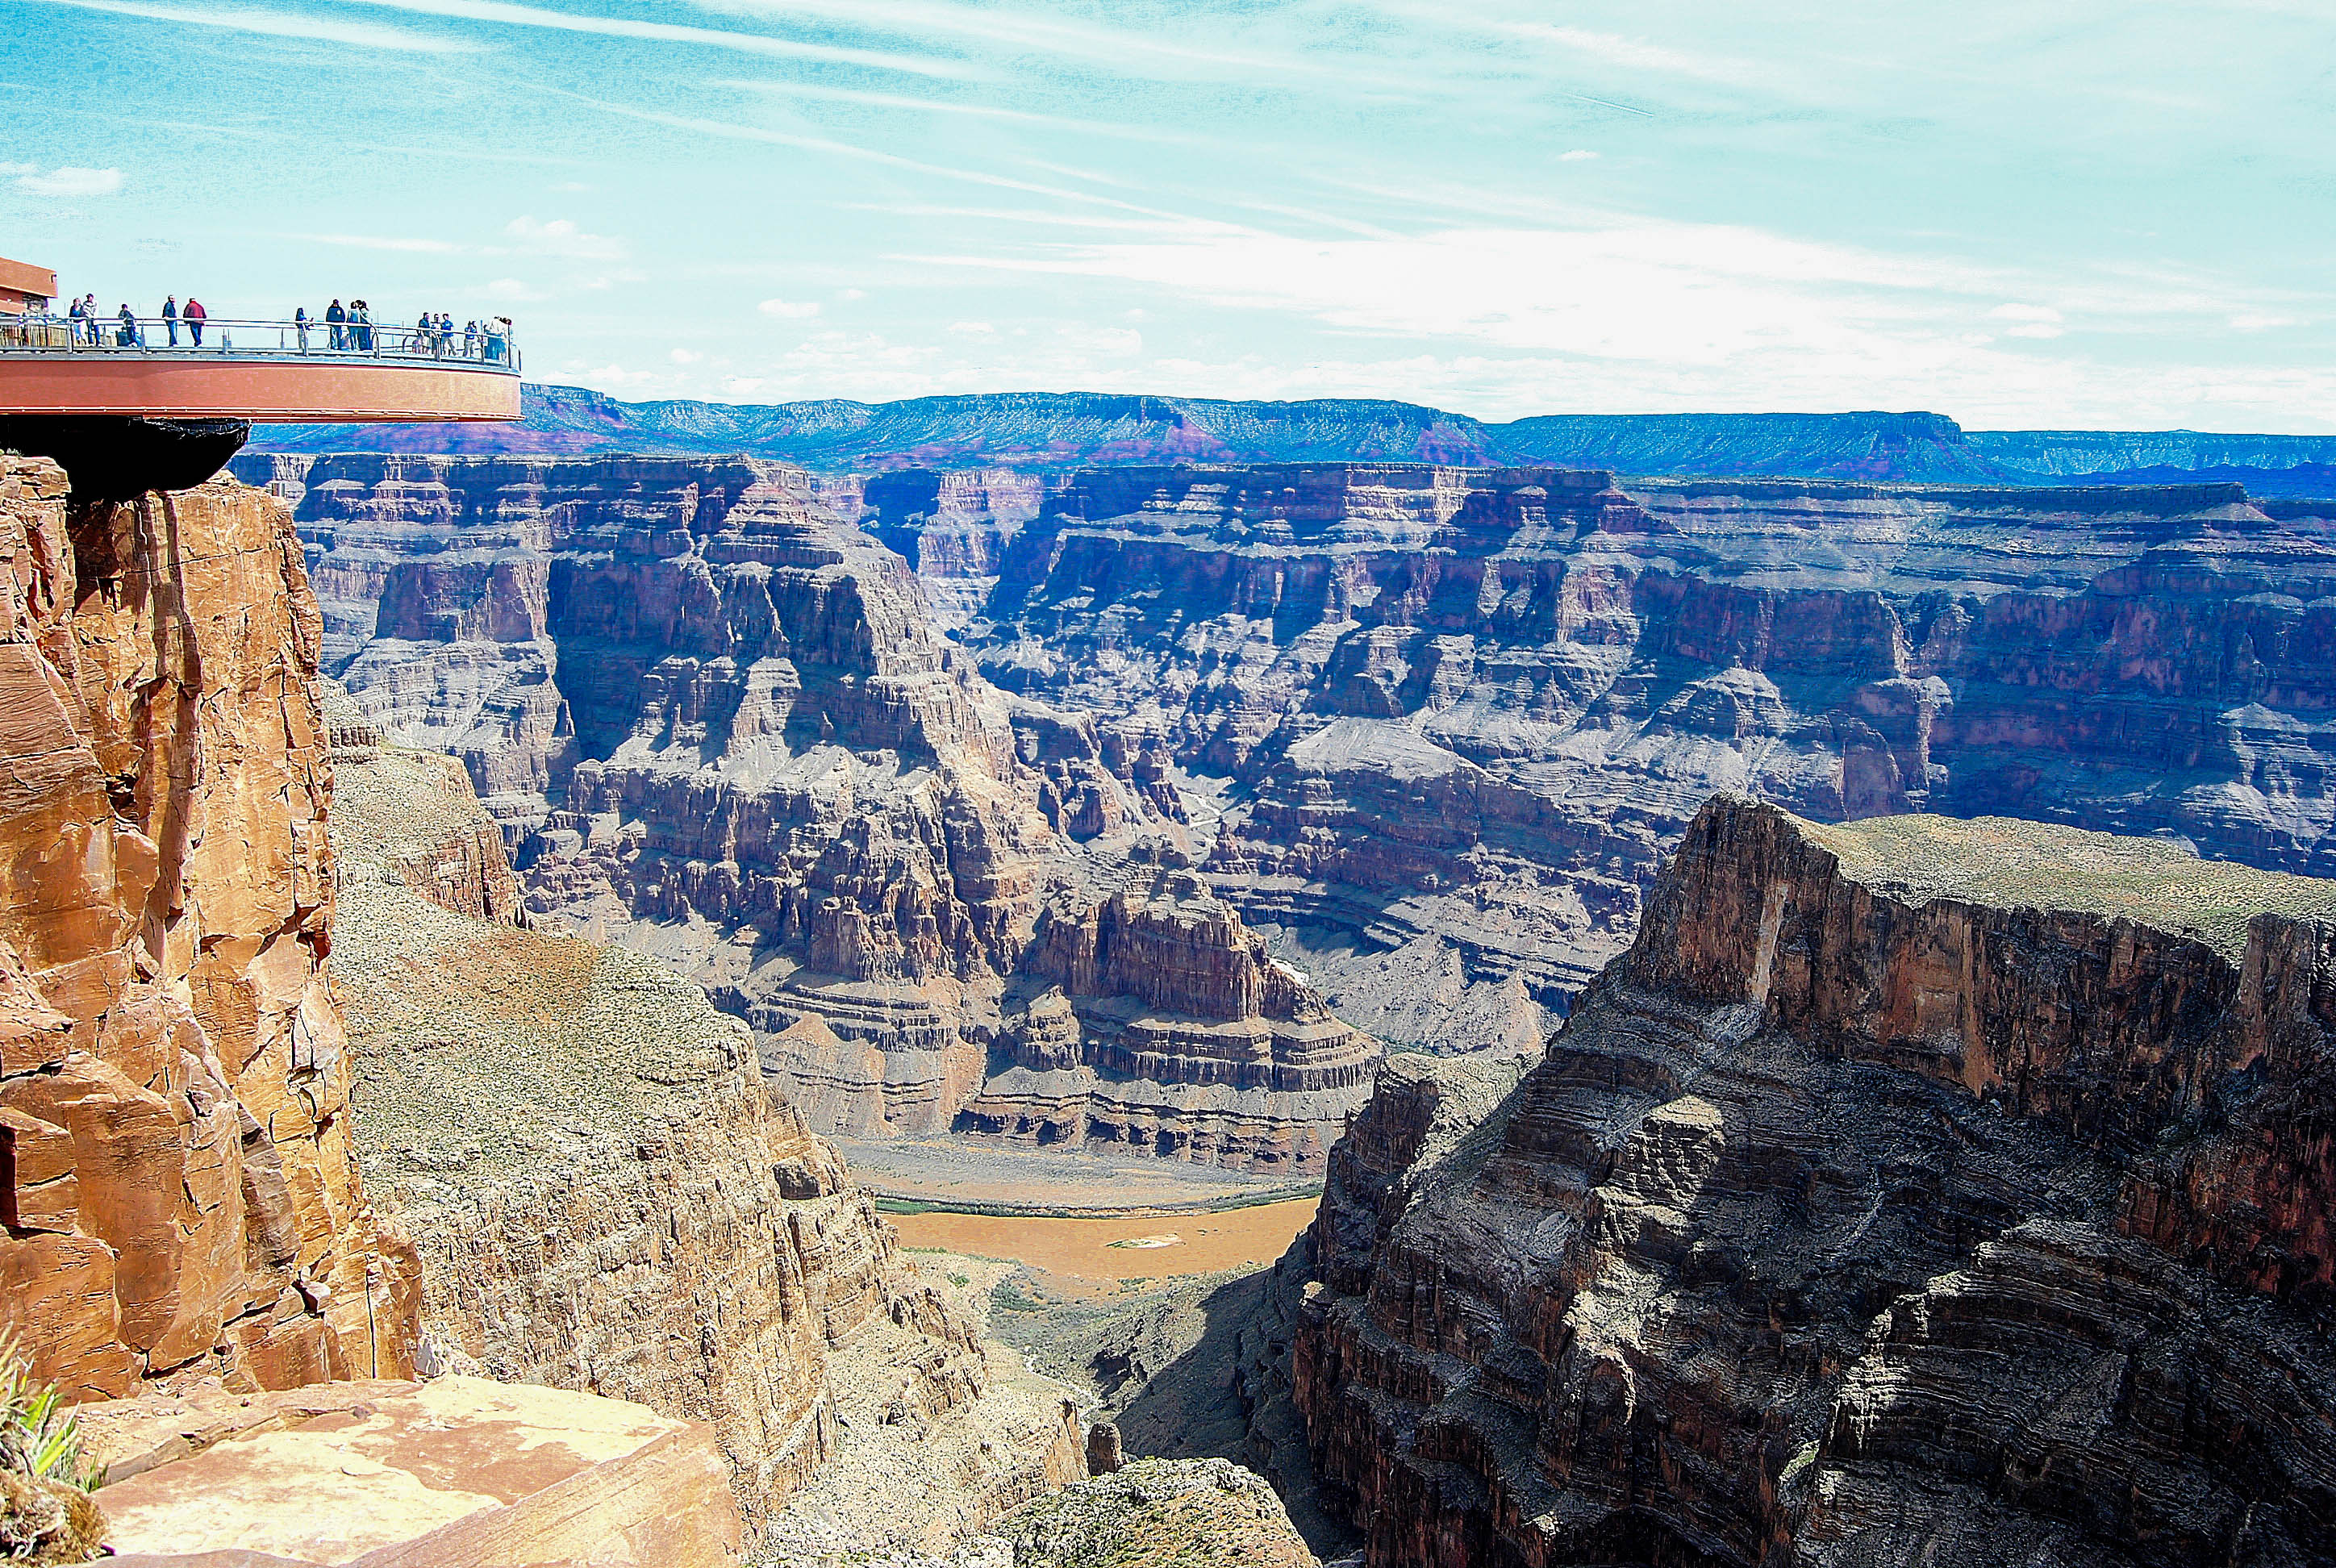 De horseshoe skywalk in de Grand Canyon